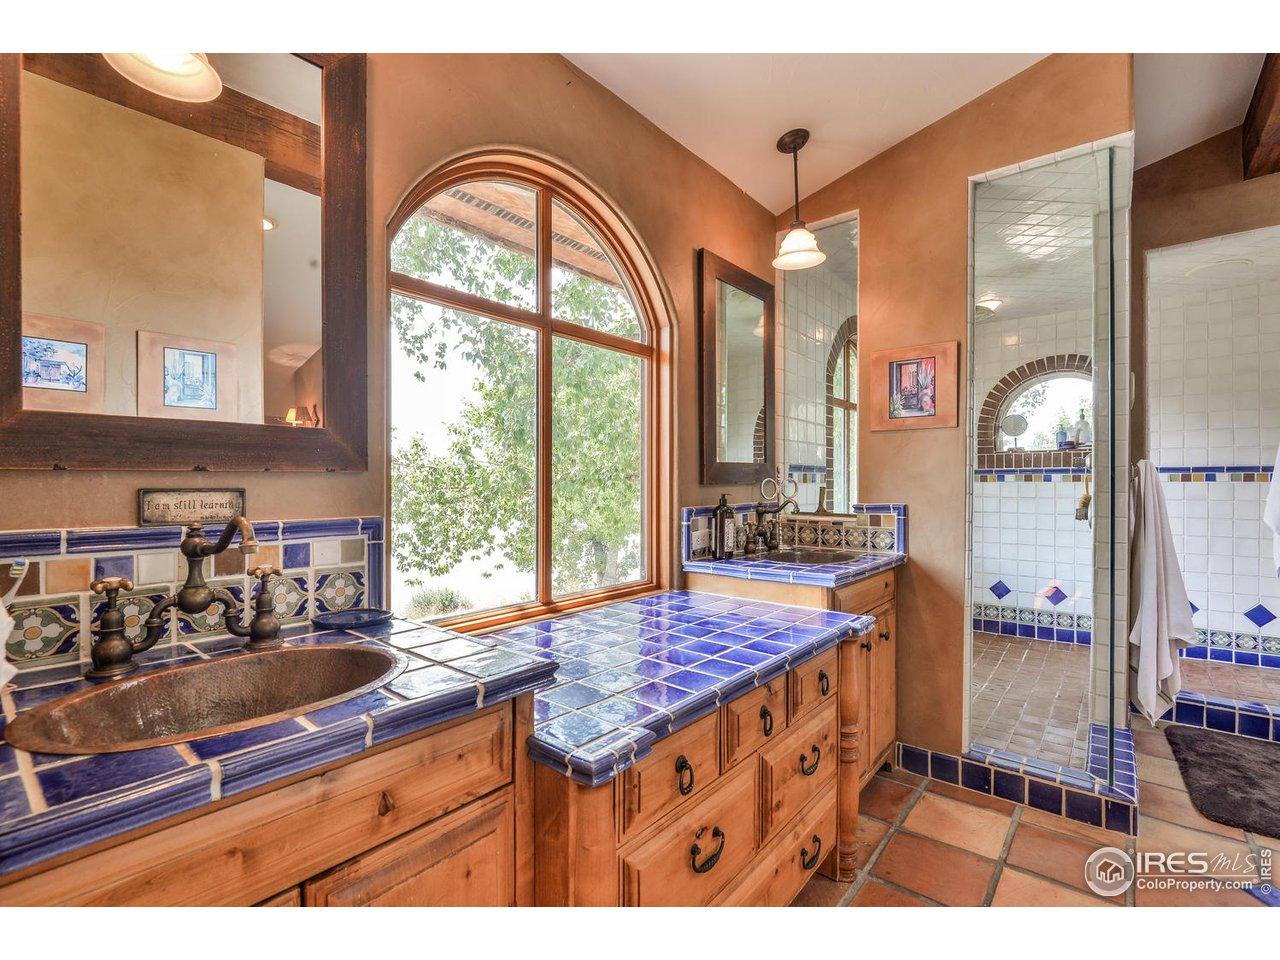 Master bath fits the style